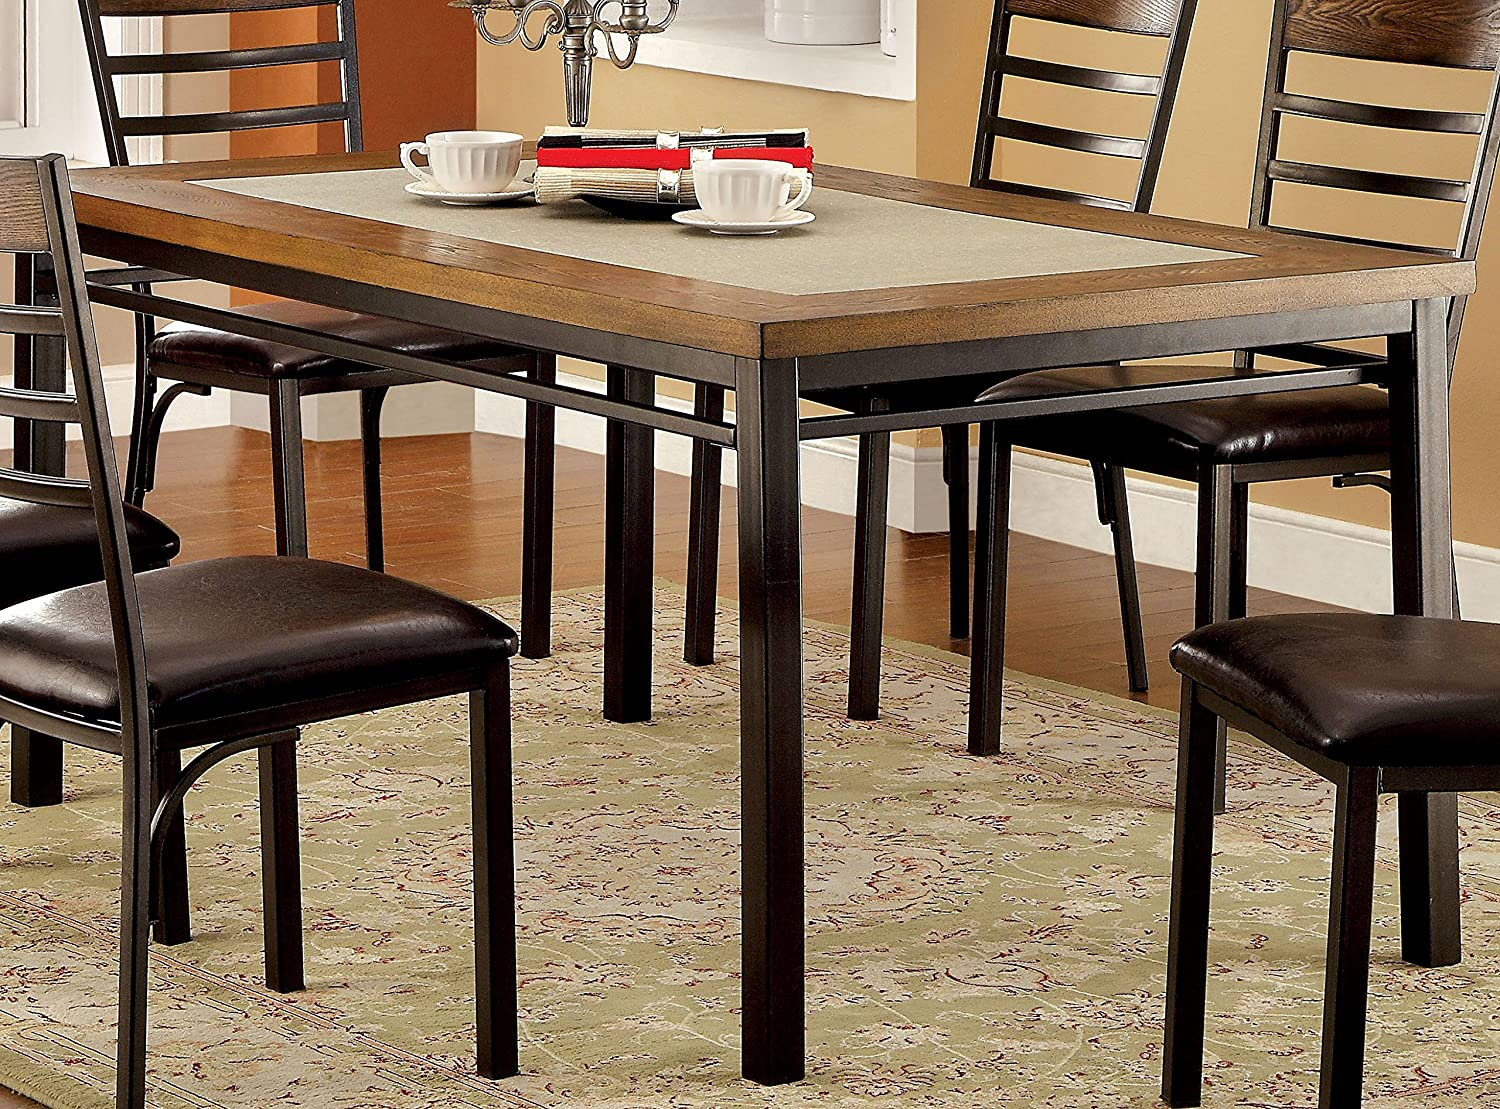 industrial kitchen table furniture. amazoncom furniture of america naga industrial dining table tables kitchen d